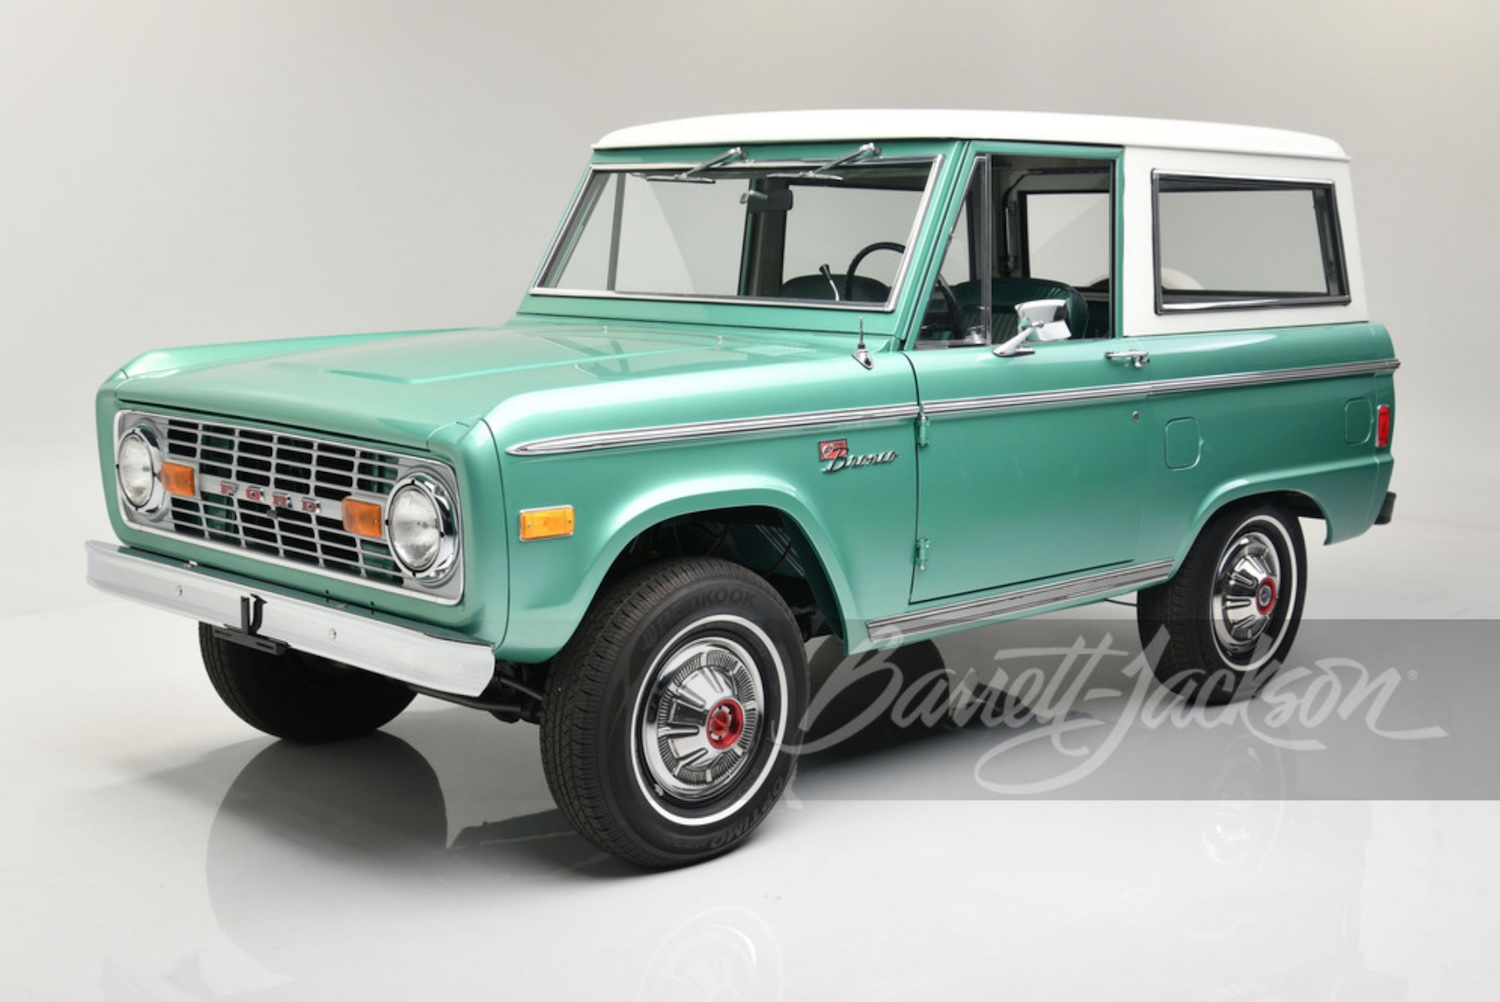 2021 Ford Bronco VIN 001 and three first-gen Ford Broncos are headed the Barrett Jackson Scottsdale.